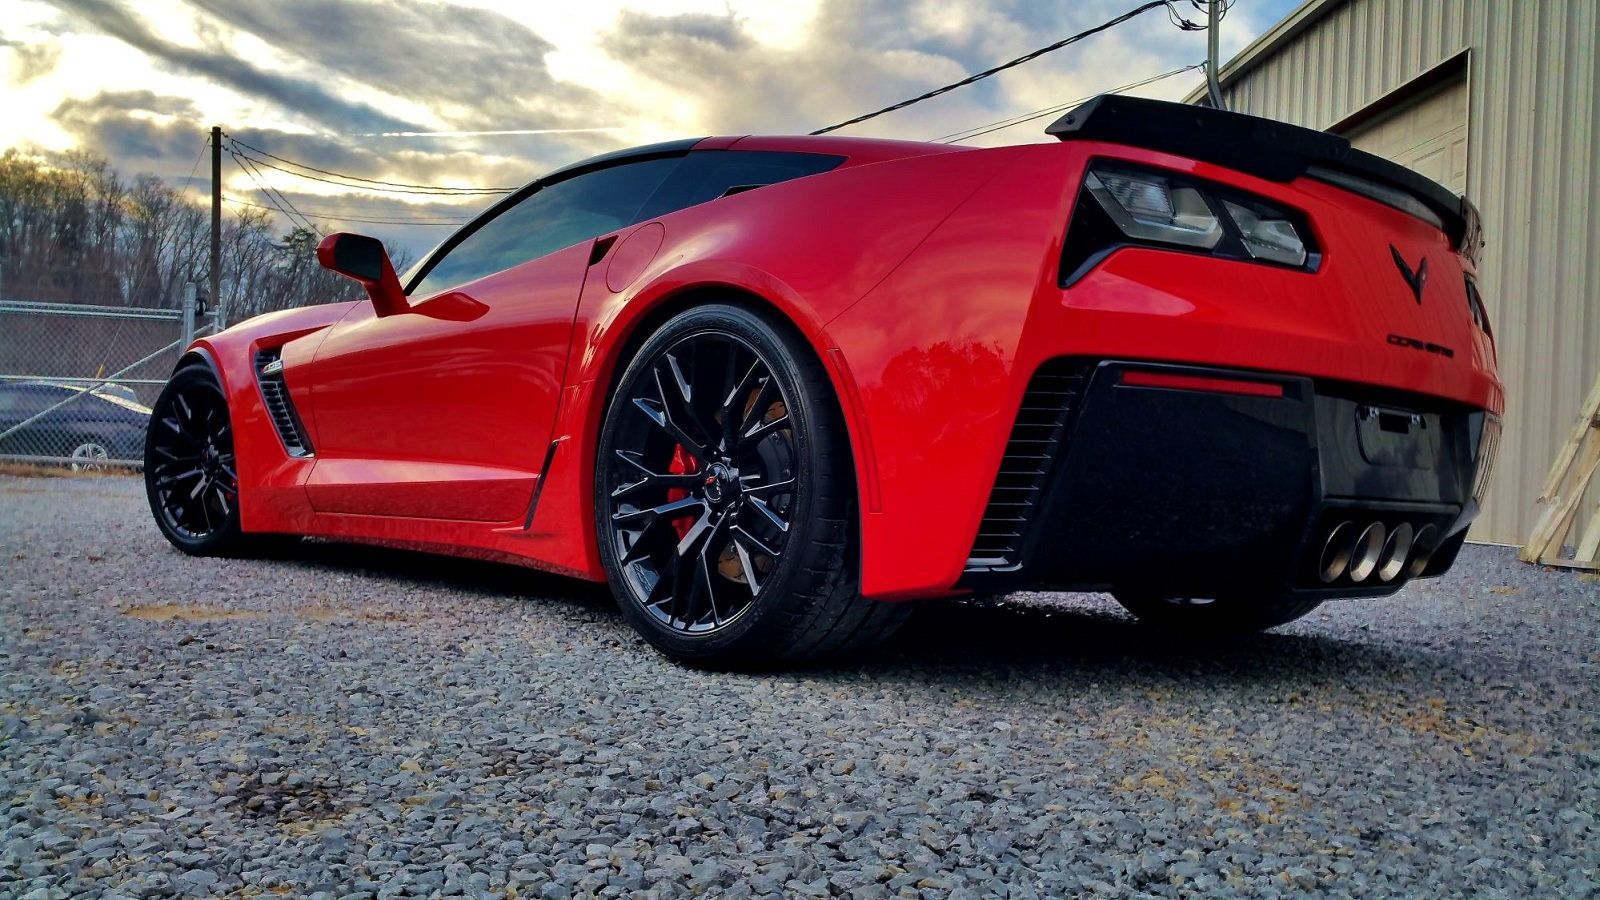 5 Cars Corvette Owners Dislike the Most